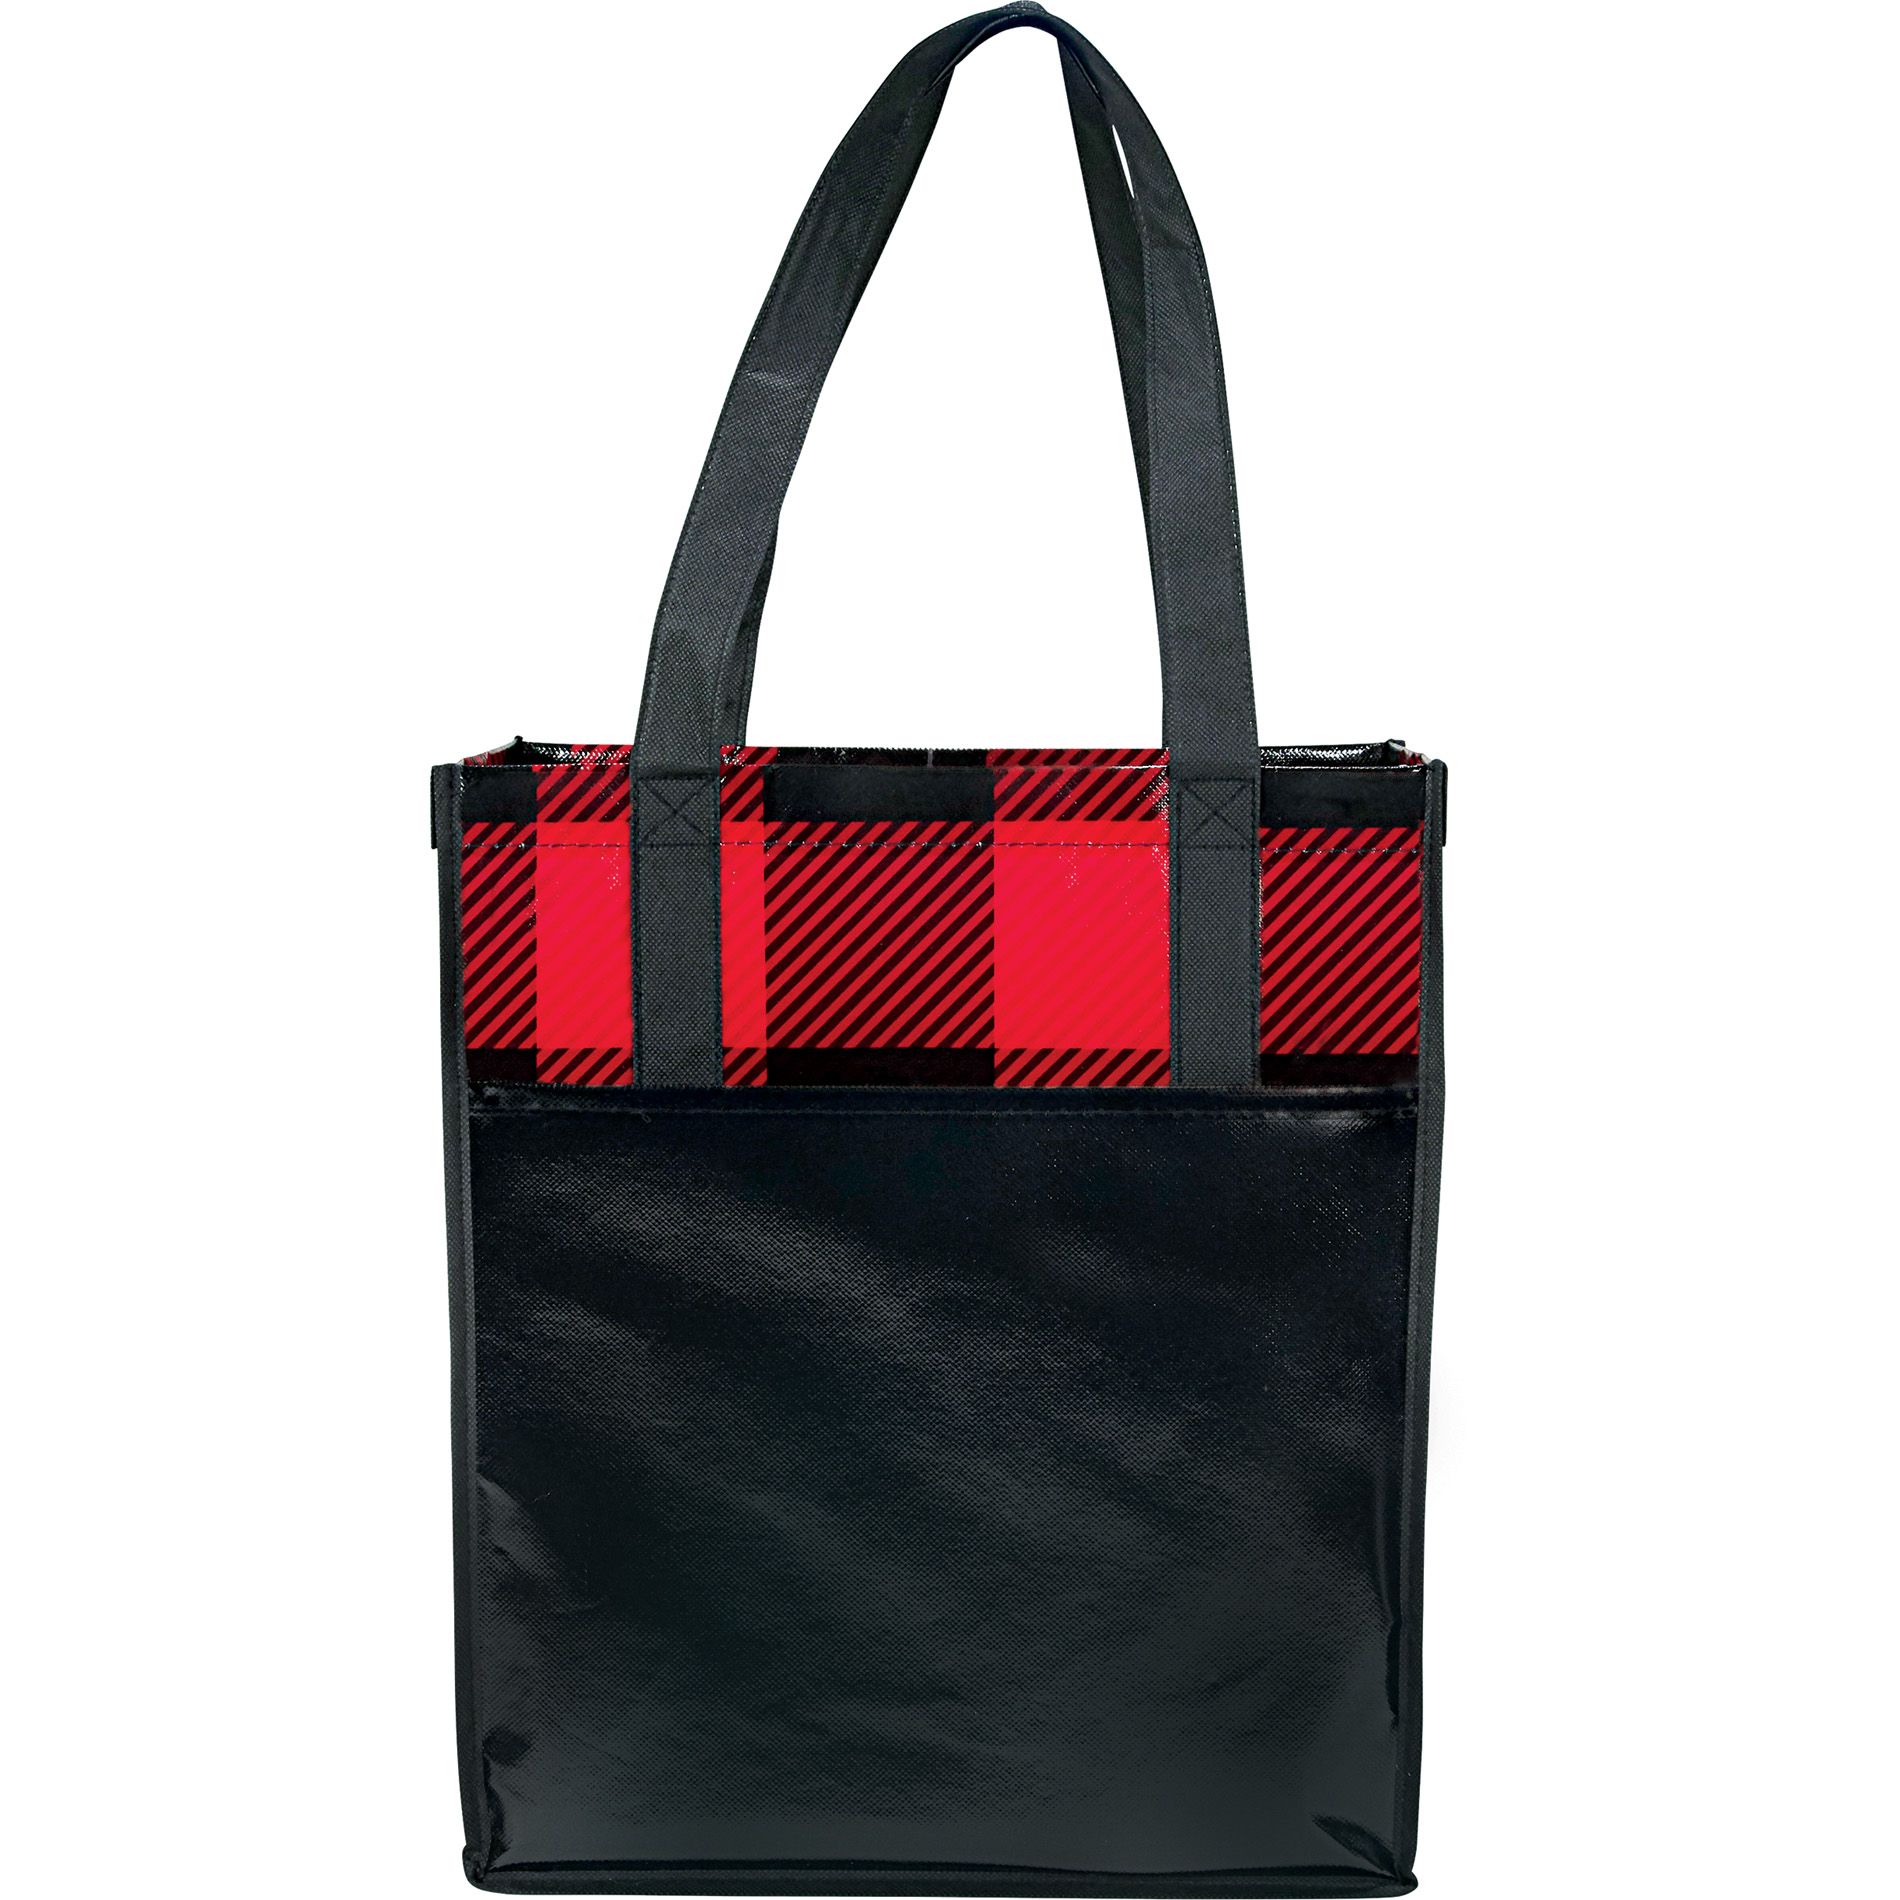 LEEDS 2160-20 - Buffalo Plaid Laminated Grocery Tote